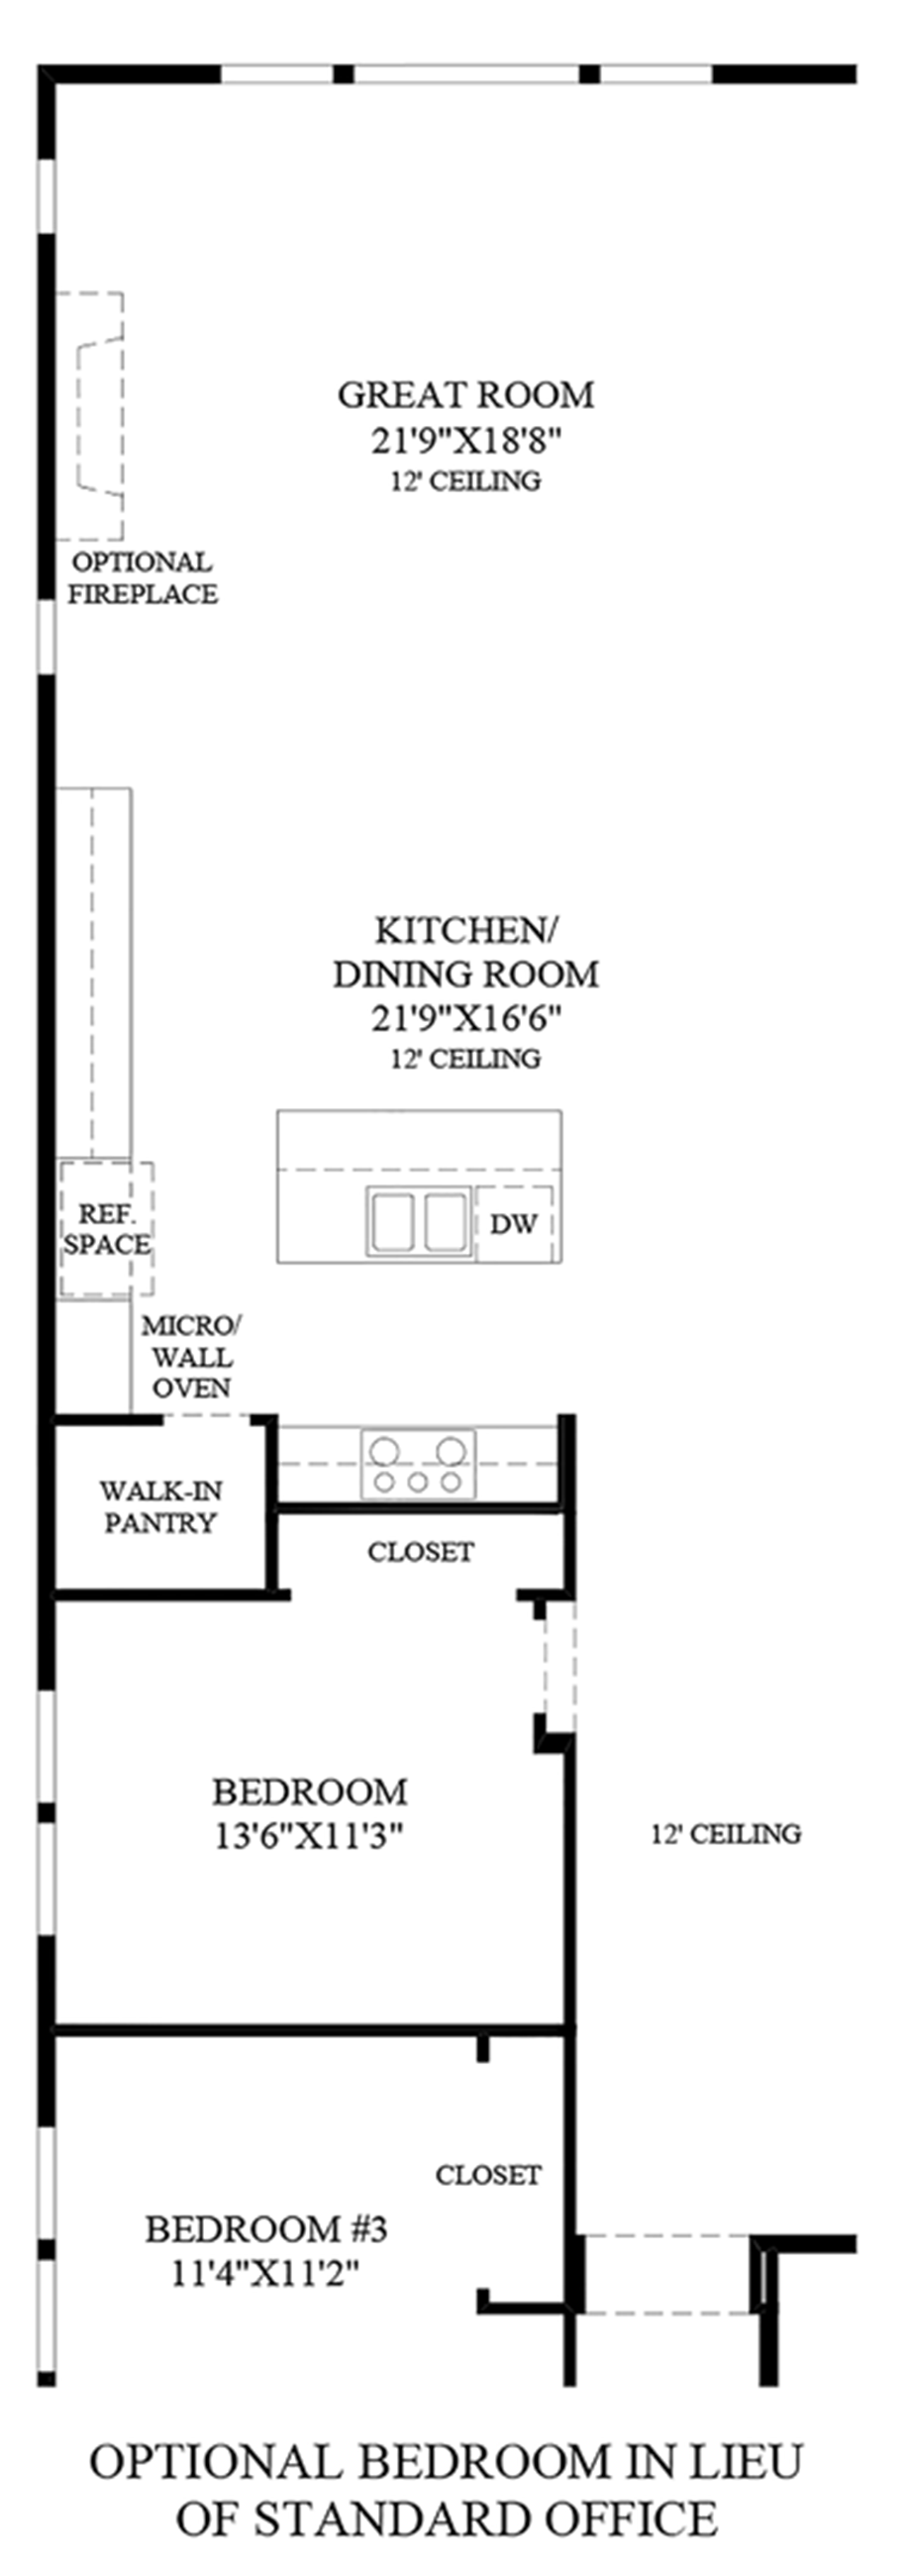 Optional Bedroom ILO Standard Office Floor Plan